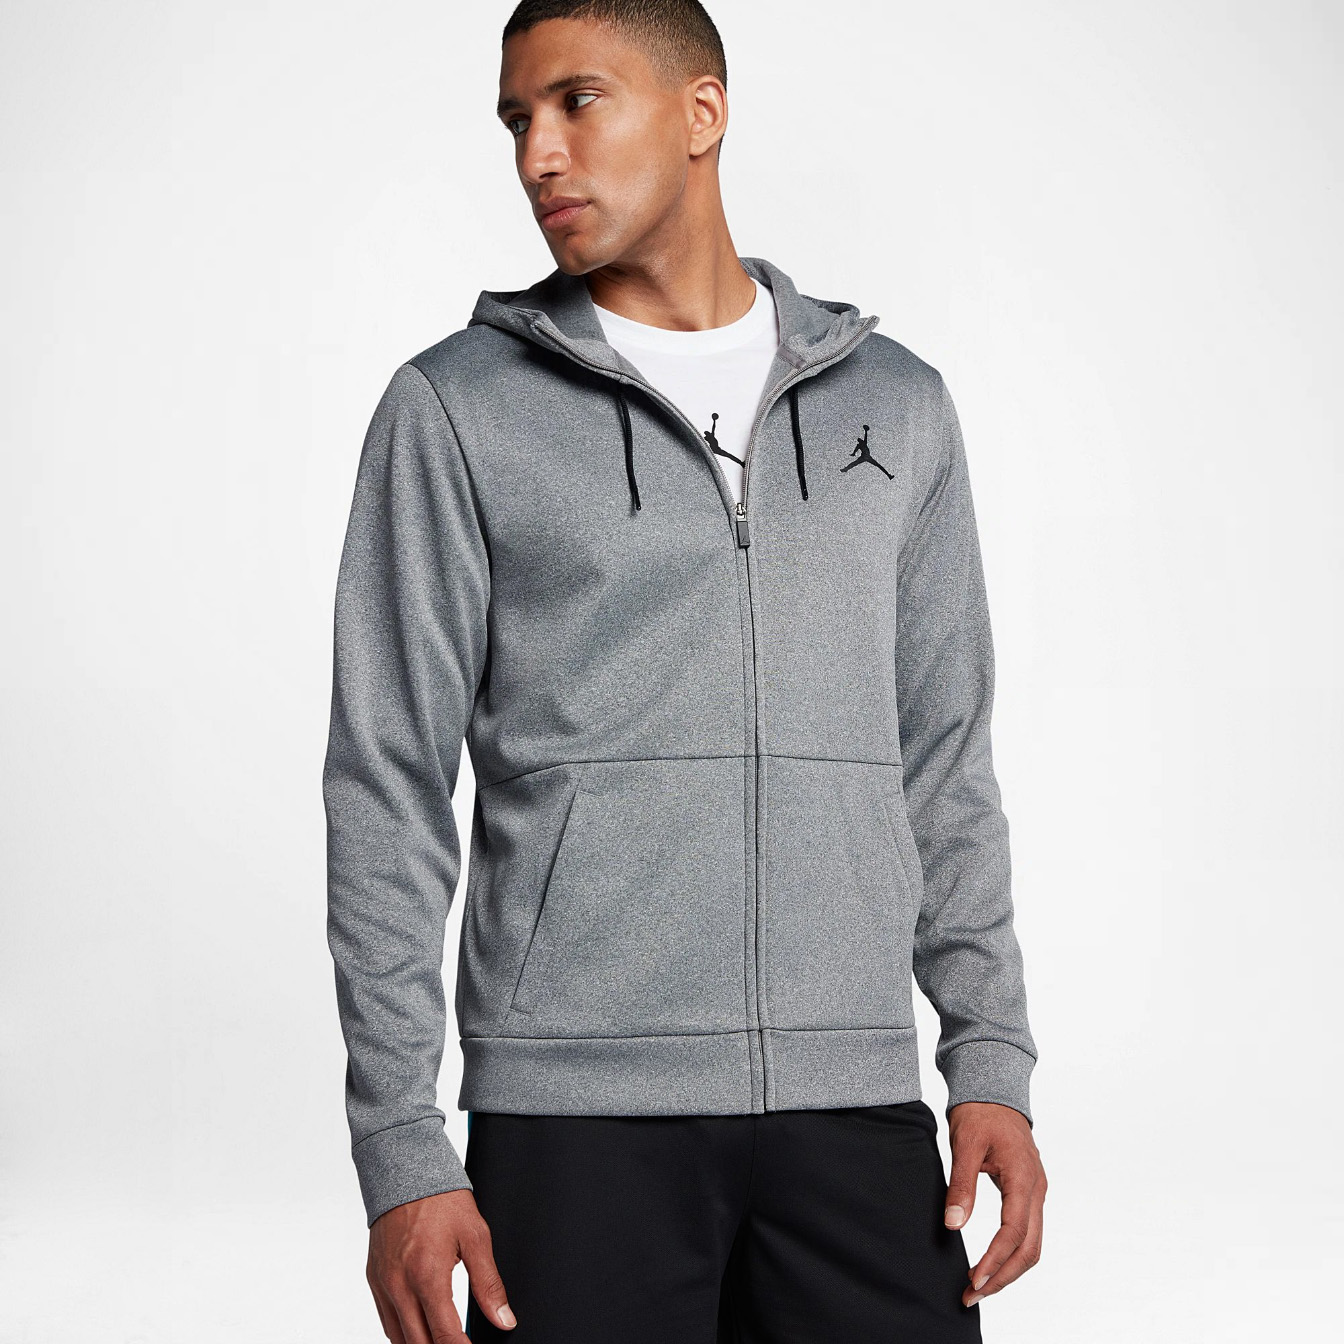 2da14c502c69 Details about JORDAN 23 Alpha Therma Full-Zip Hoodie Sweatshirt Sweat Shirt  jumper fleece air